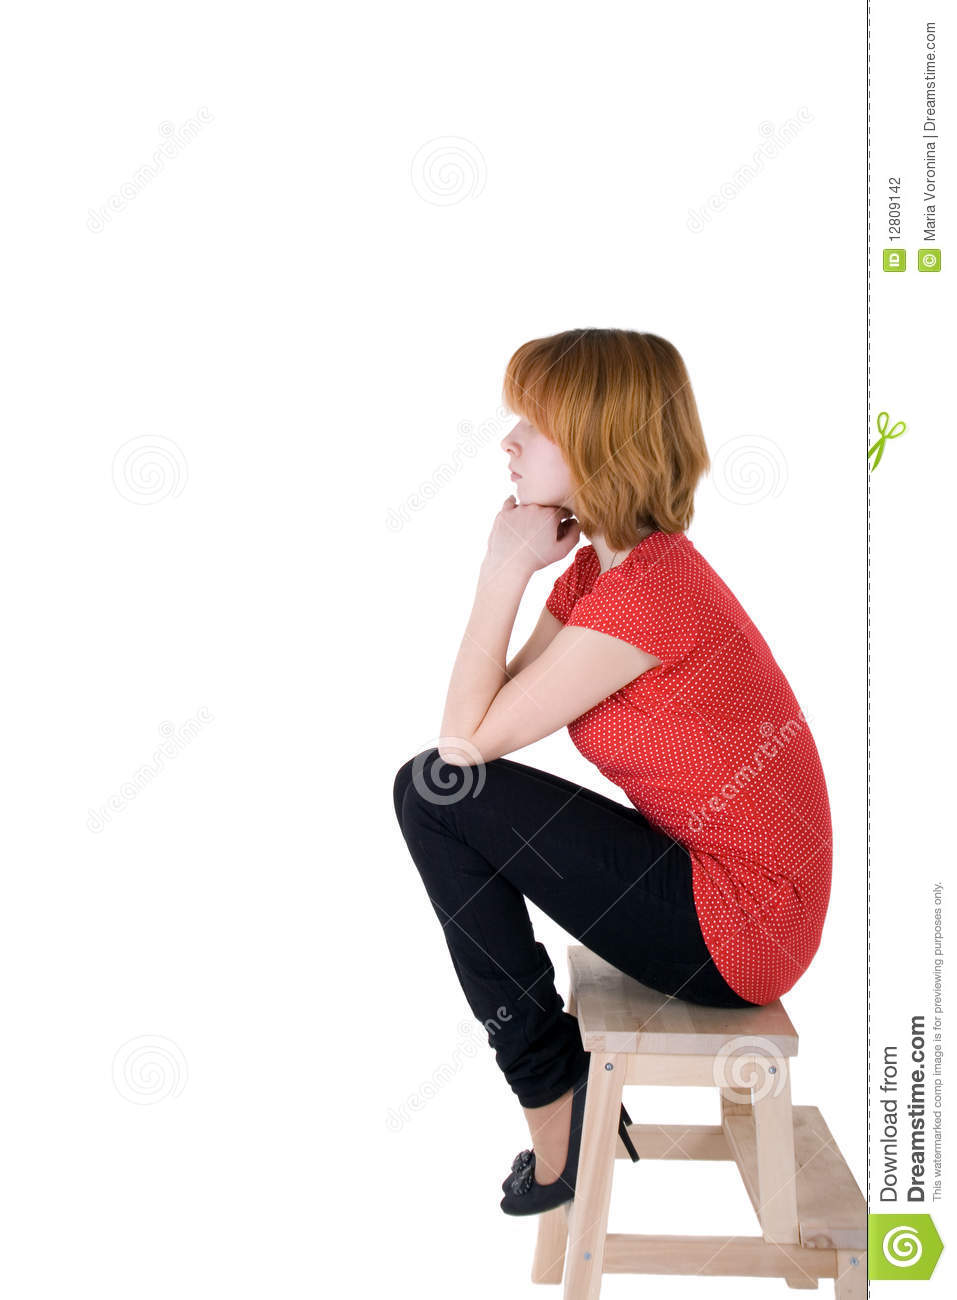 Pretty Girl Sitting On A Chair Stock Photo - Image: 12809142